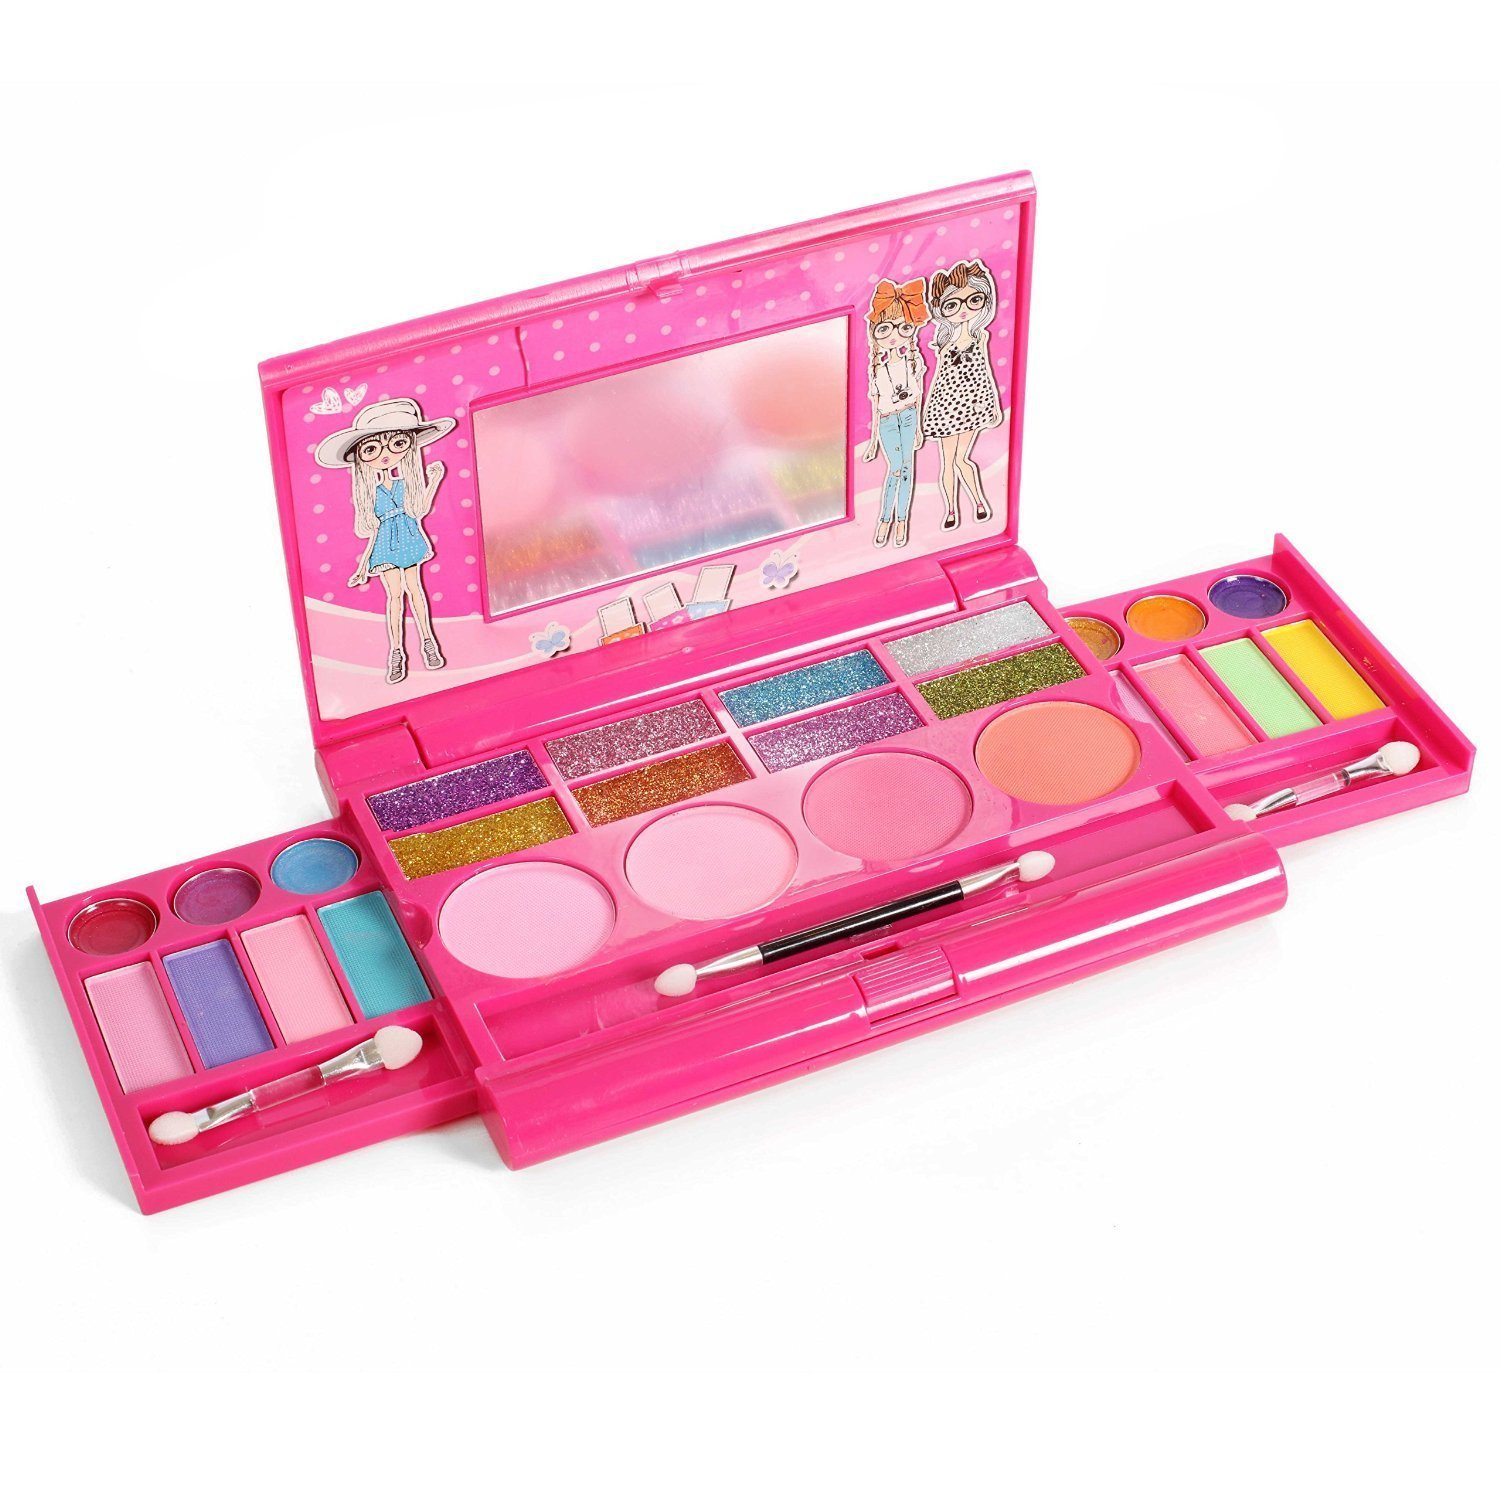 71Aj8HcQtiL. SL1500  - Princess Girl's all-in-one Deluxe Makeup Palette with mirror